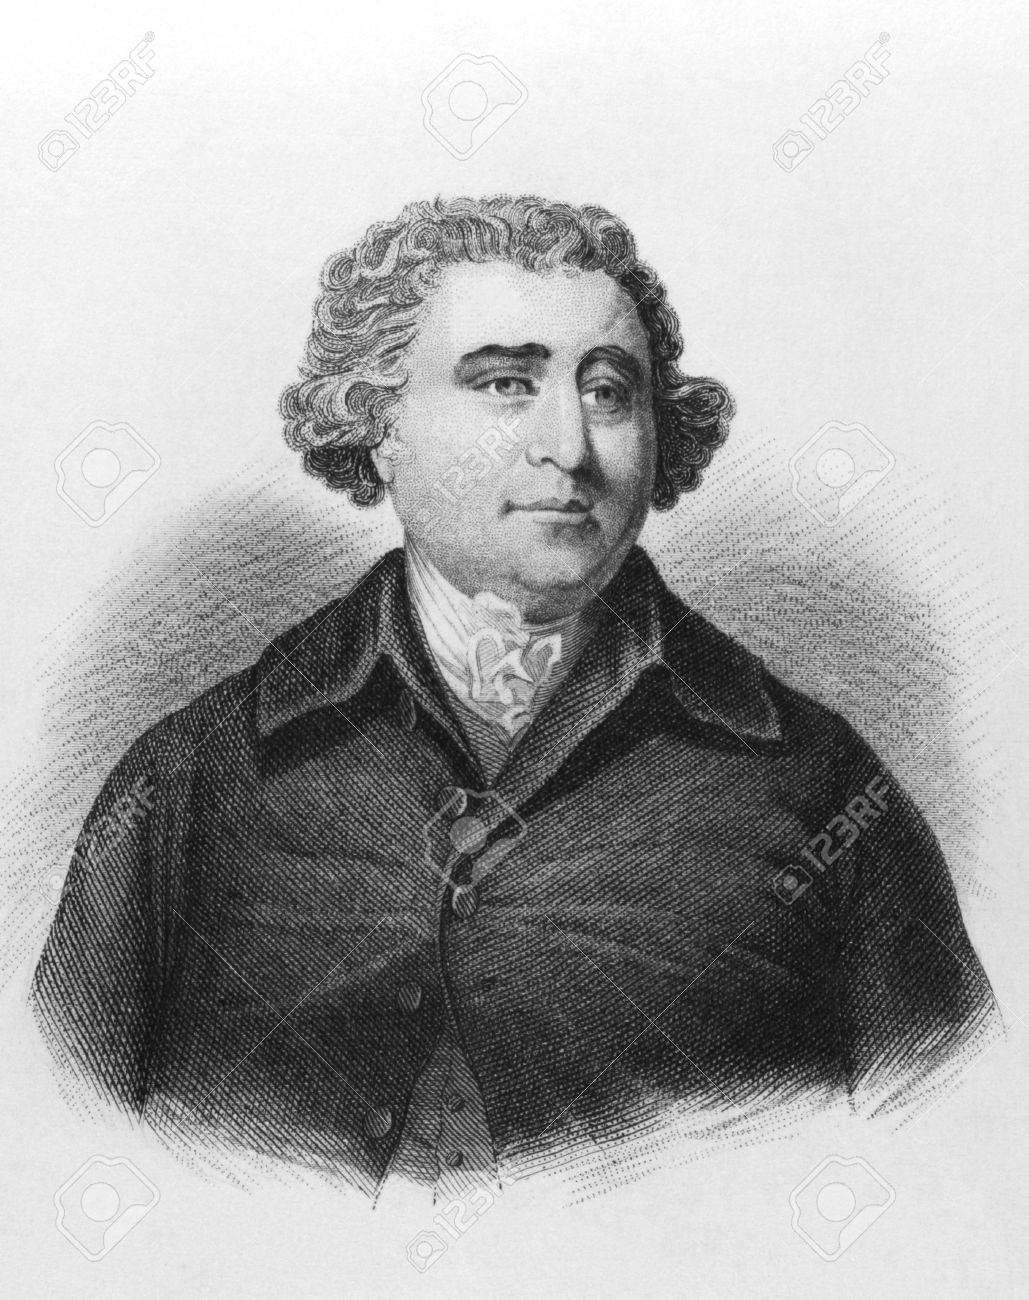 Charles James Fox on engraving from the 1800s. Prominent British Whig statesman. Published in London by L.Tallis. Stock Photo - 8510588